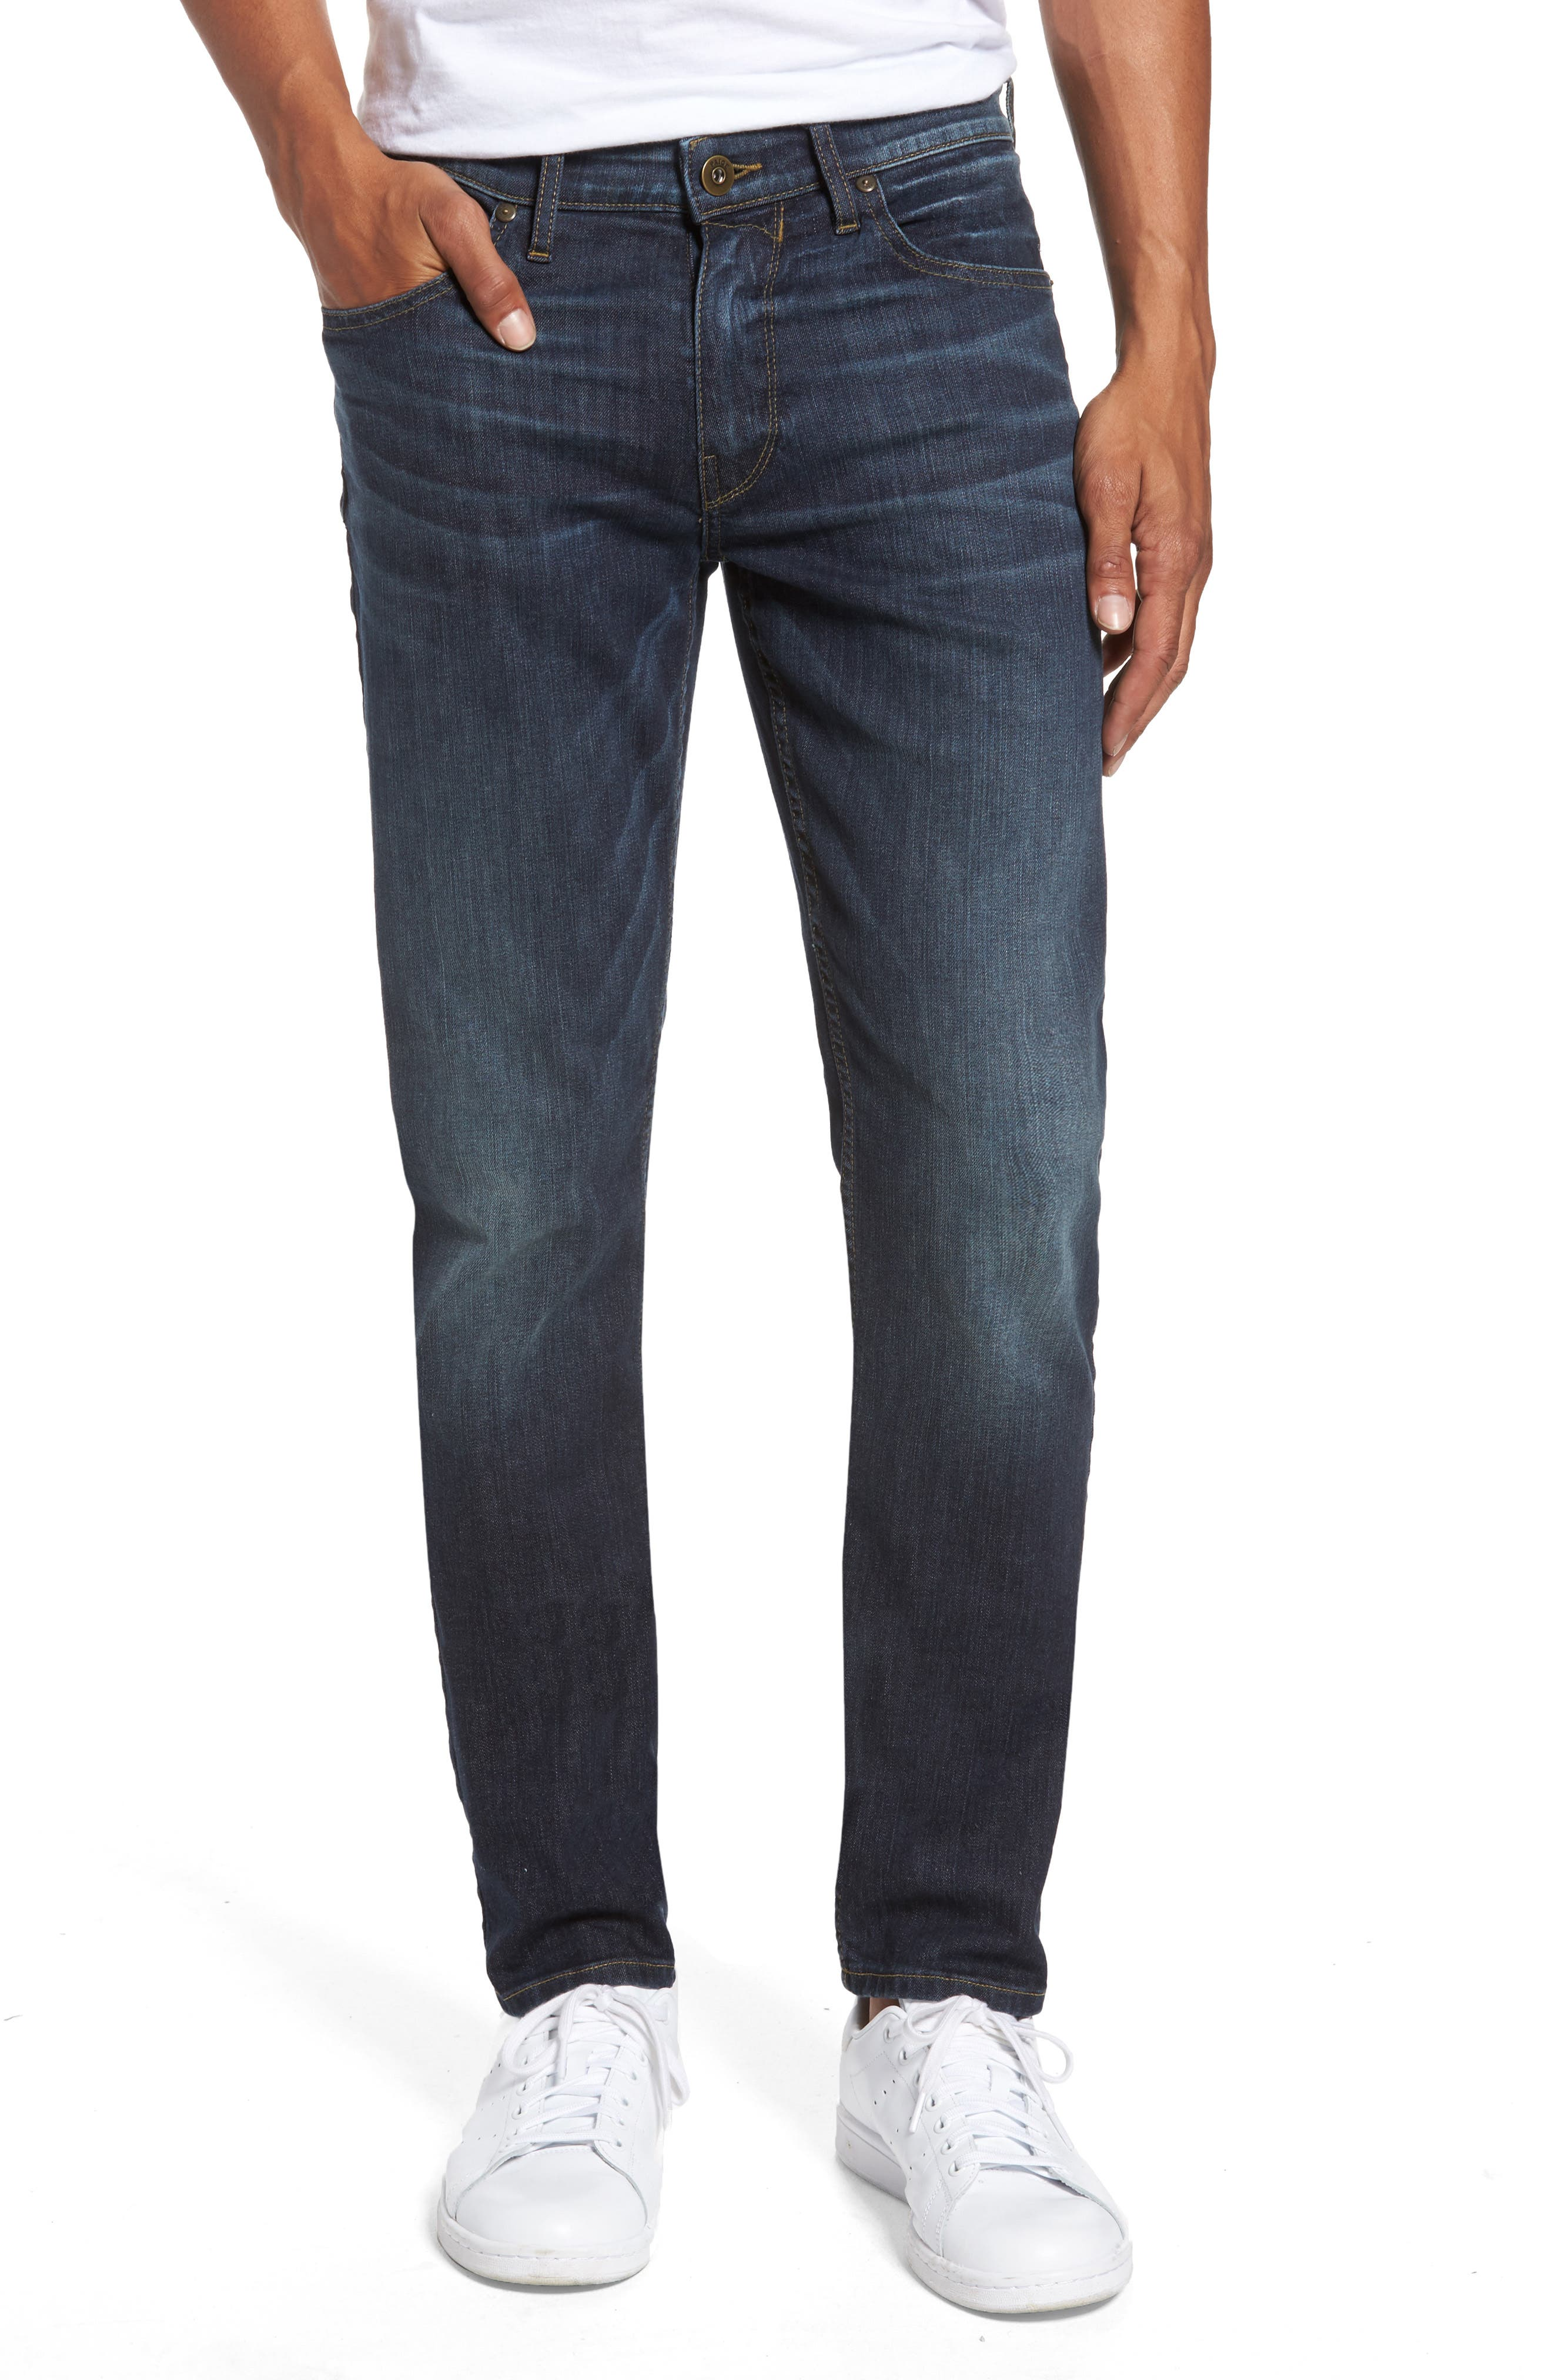 Alternate Image 1 Selected - PAIGE Lennox Slim Fit Jeans (Jerry)